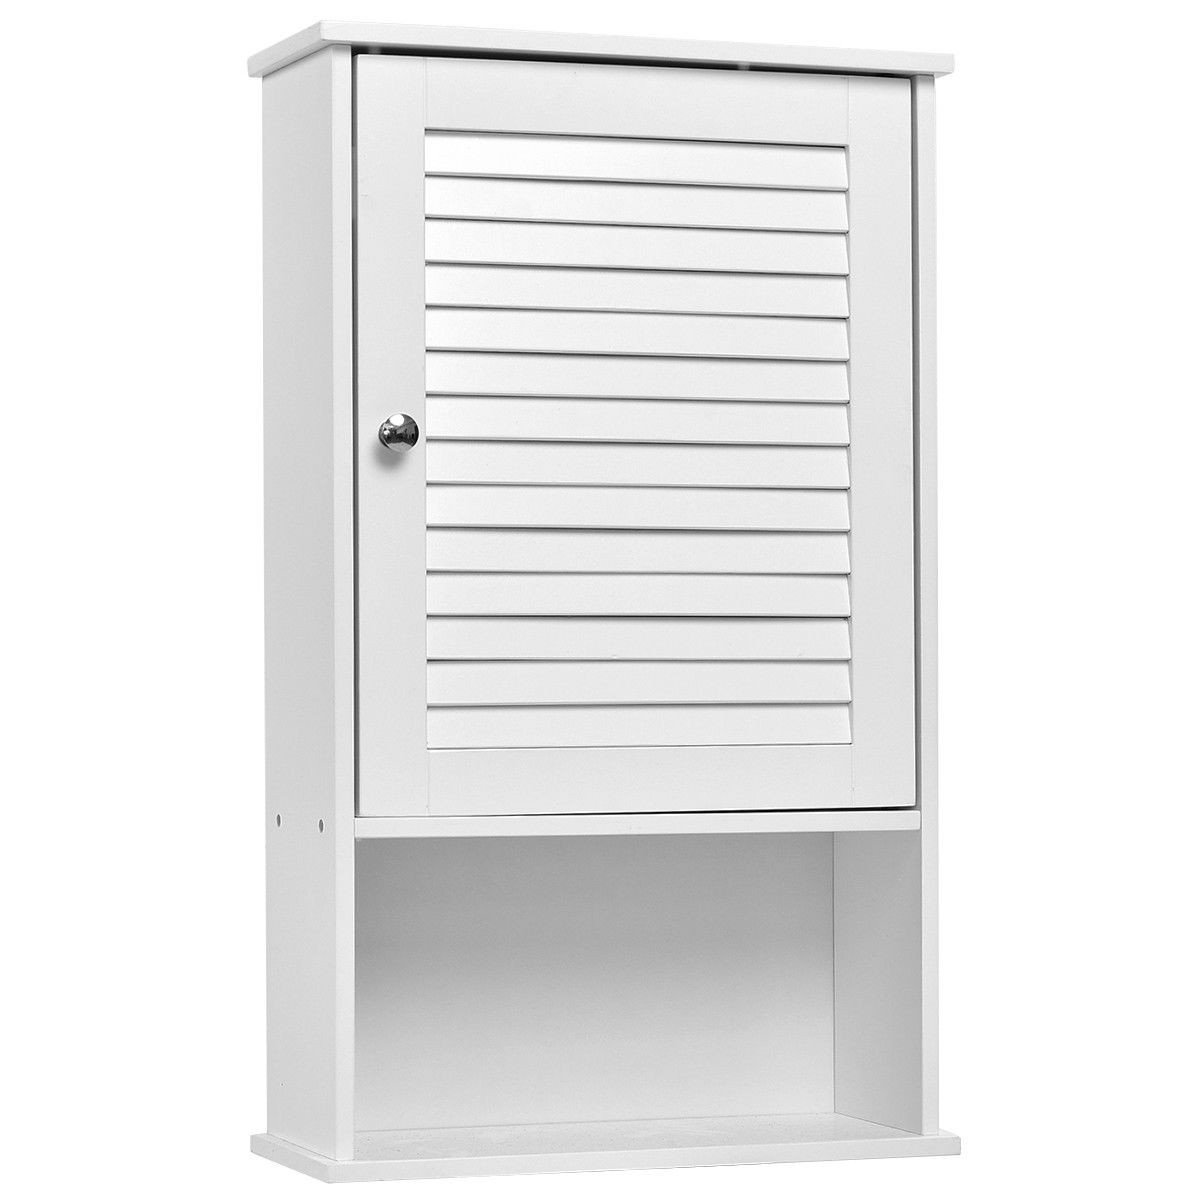 GentleShower Storage Cabinet, Wall-Mounted Bathroom Cabinet with Shutter Door and Height Adjustable Shelf, Elegant Cabinet Cupboard in Storage Toiletries and Hygiene Products, White